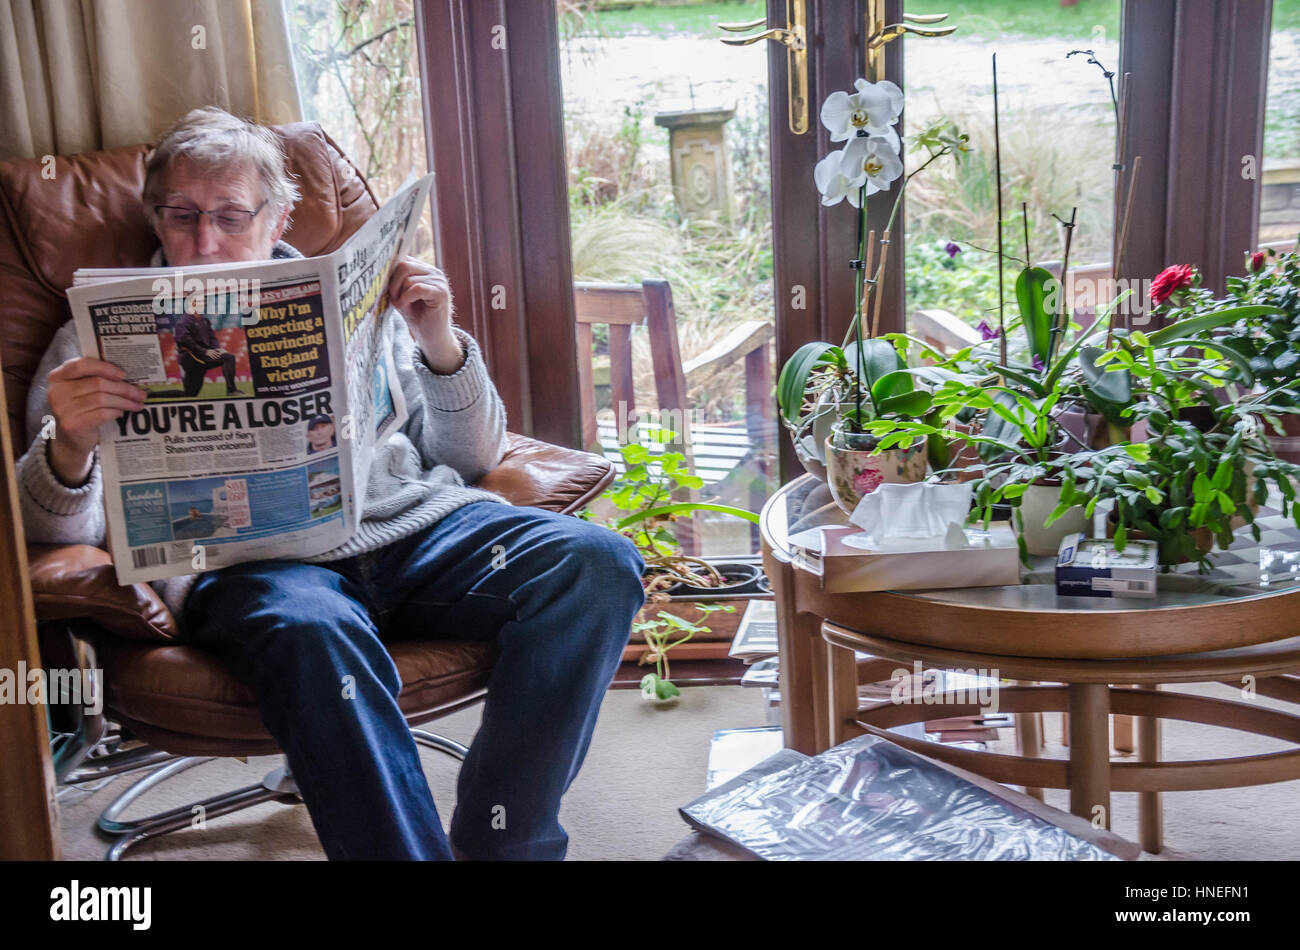 a man sits in a fy armchair reading the daily mail newspaper HNEFN1